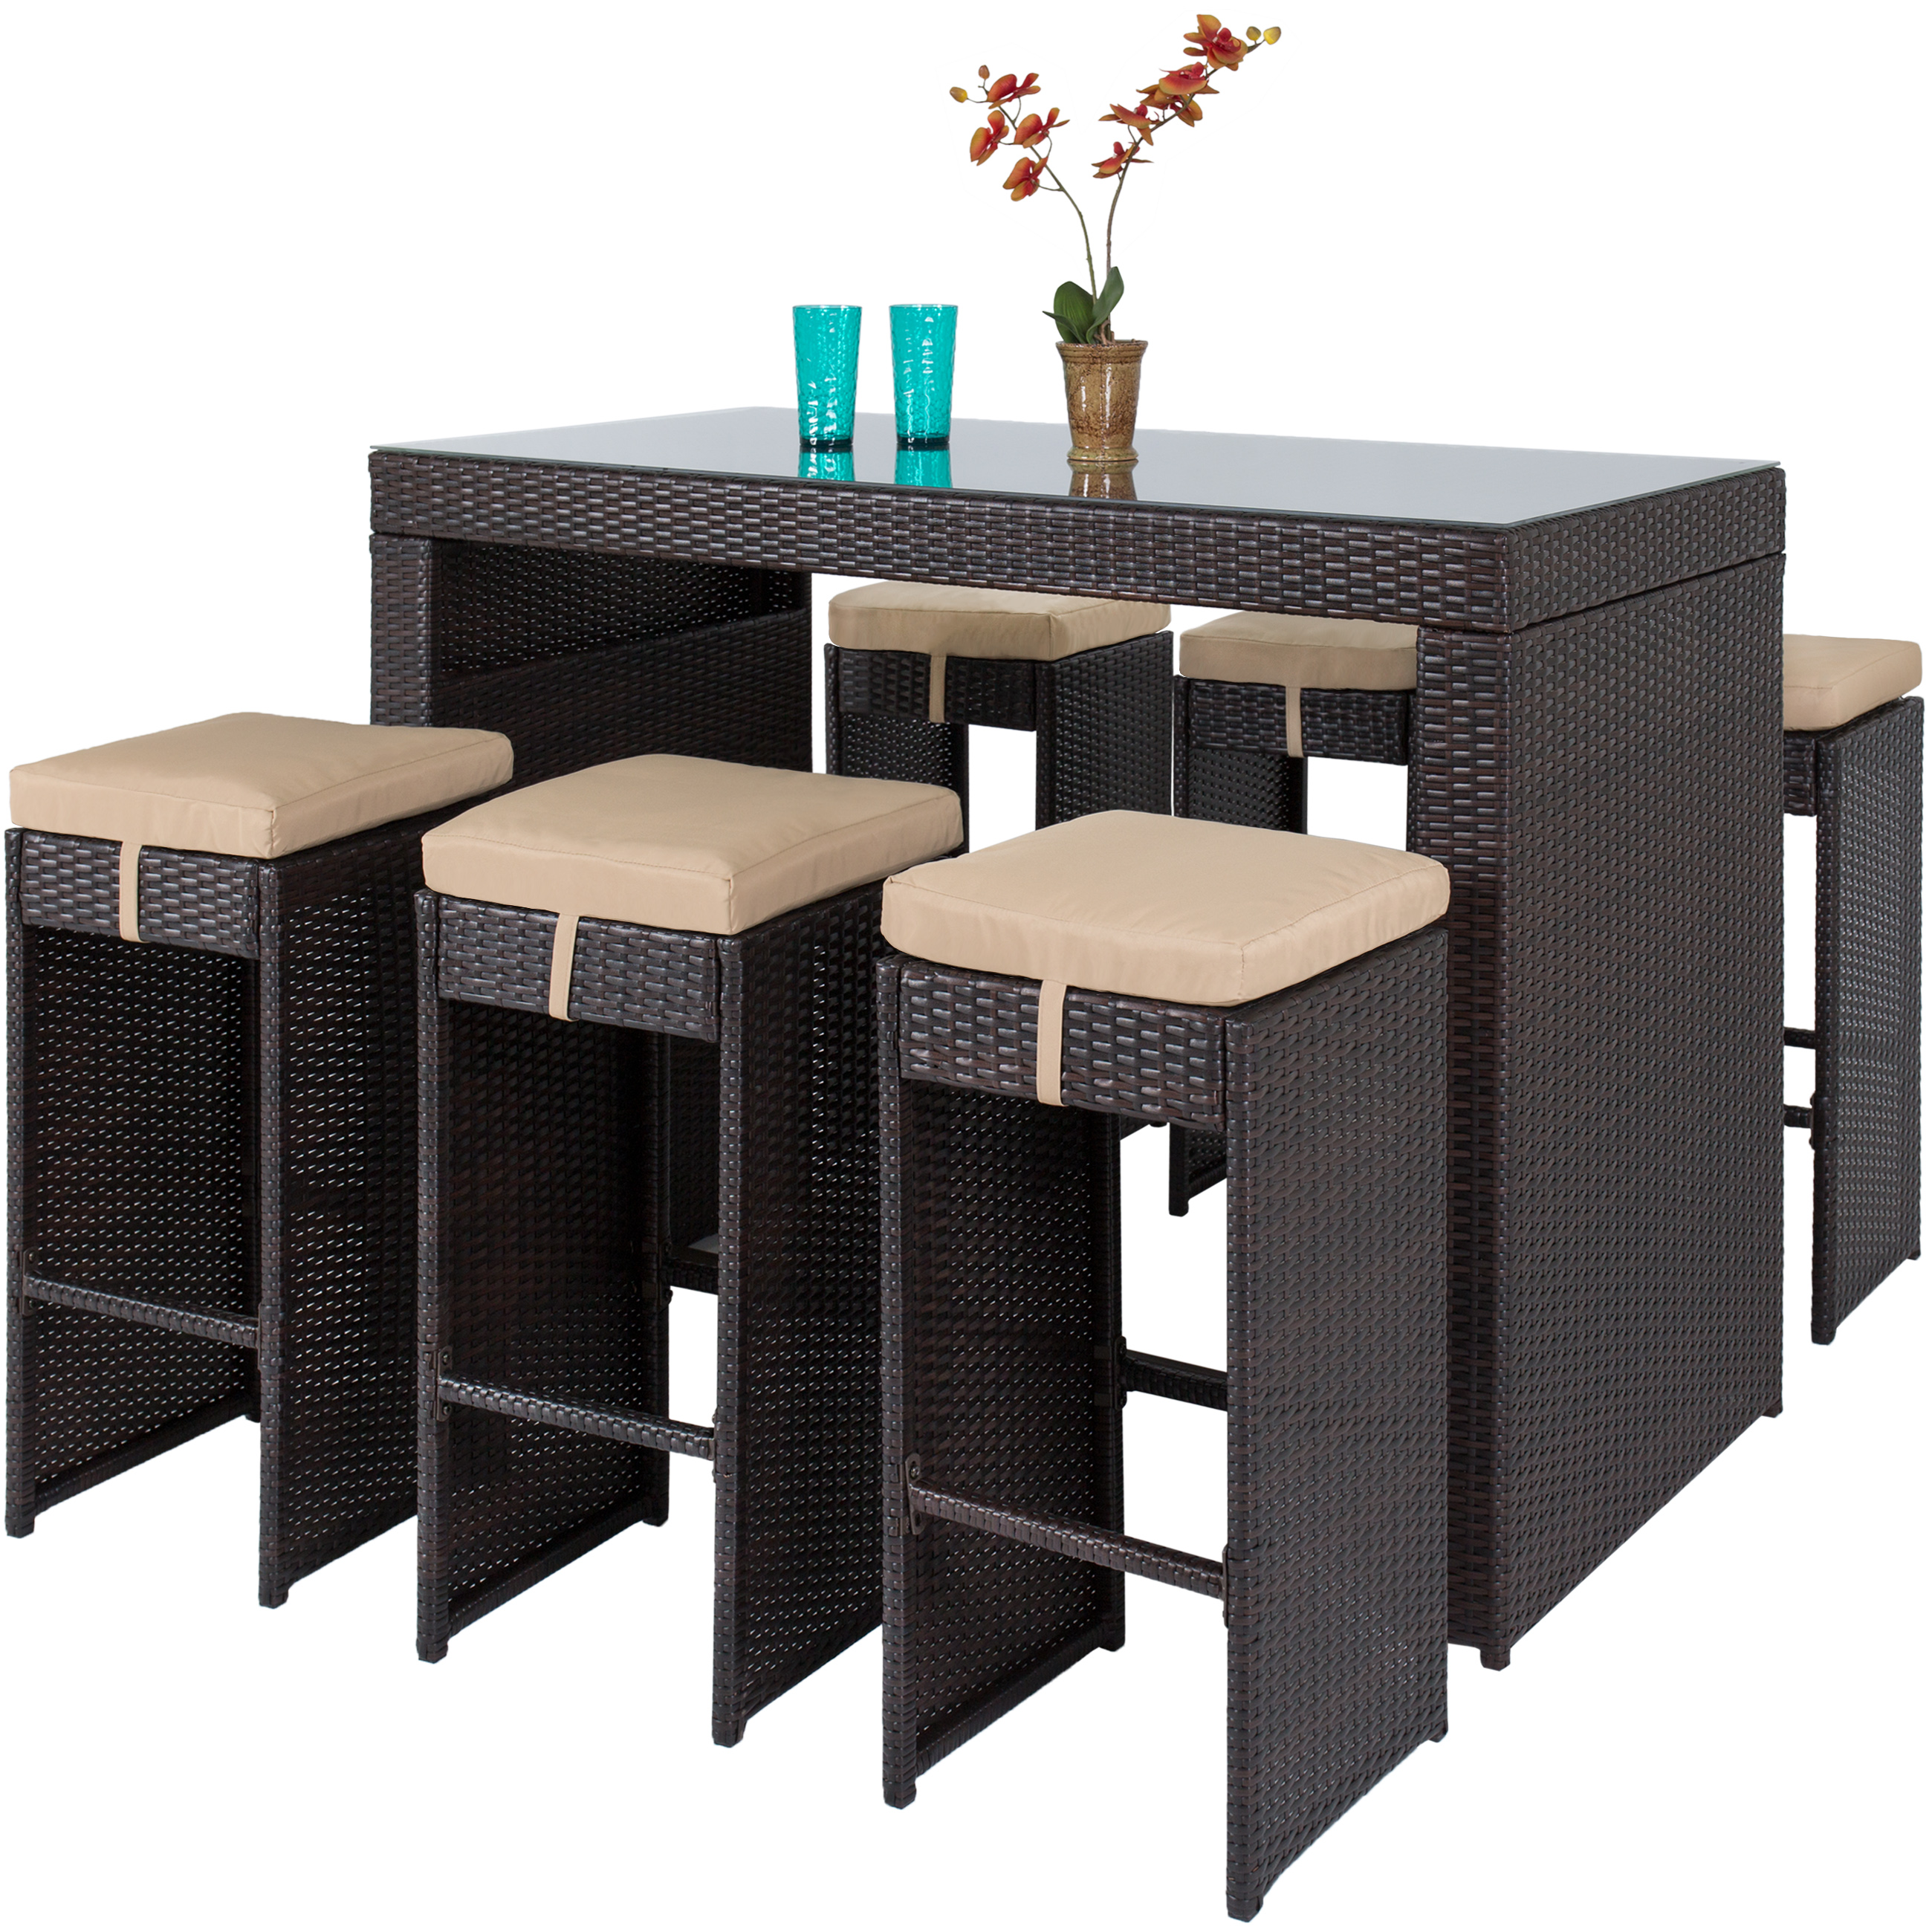 Best Choice Products 7pc Rattan Wicker Bar Dining Table Patio Furniture Set by